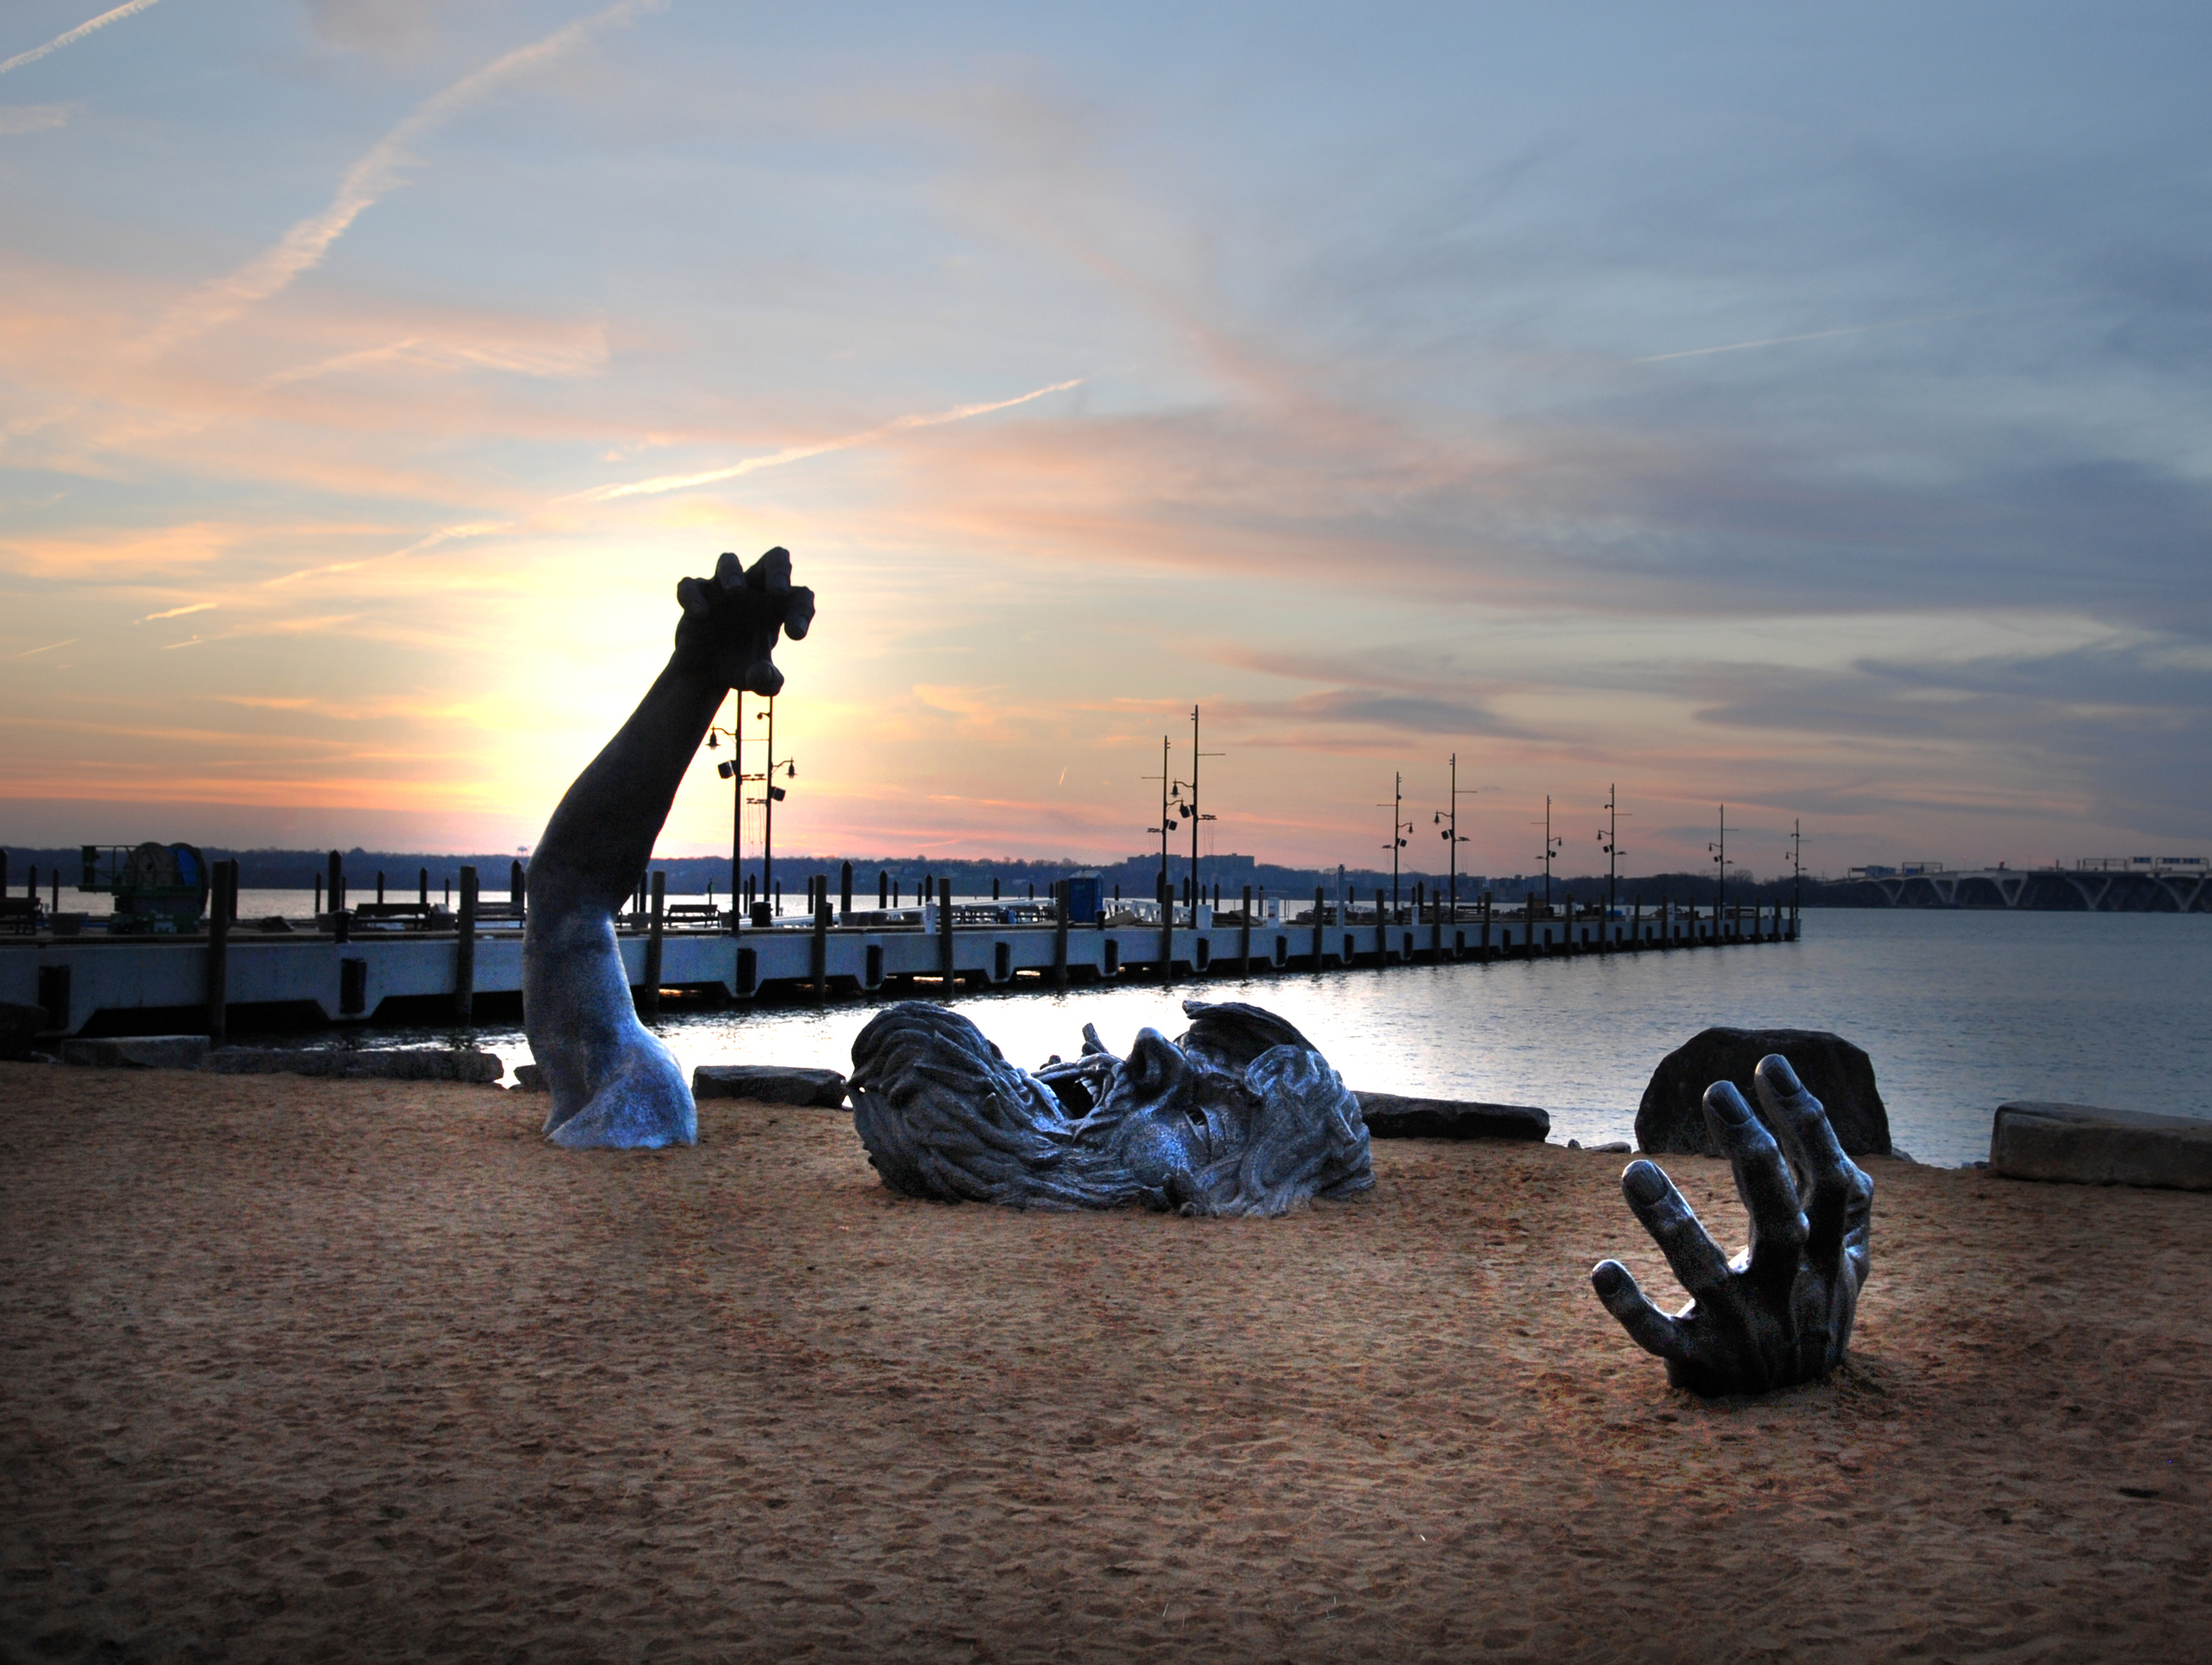 """WSSI obtained a permit modification for installation of """"The Awakening,"""" a sculpture by J. Seward Johnson, Jr., along the National Harbor shoreline."""